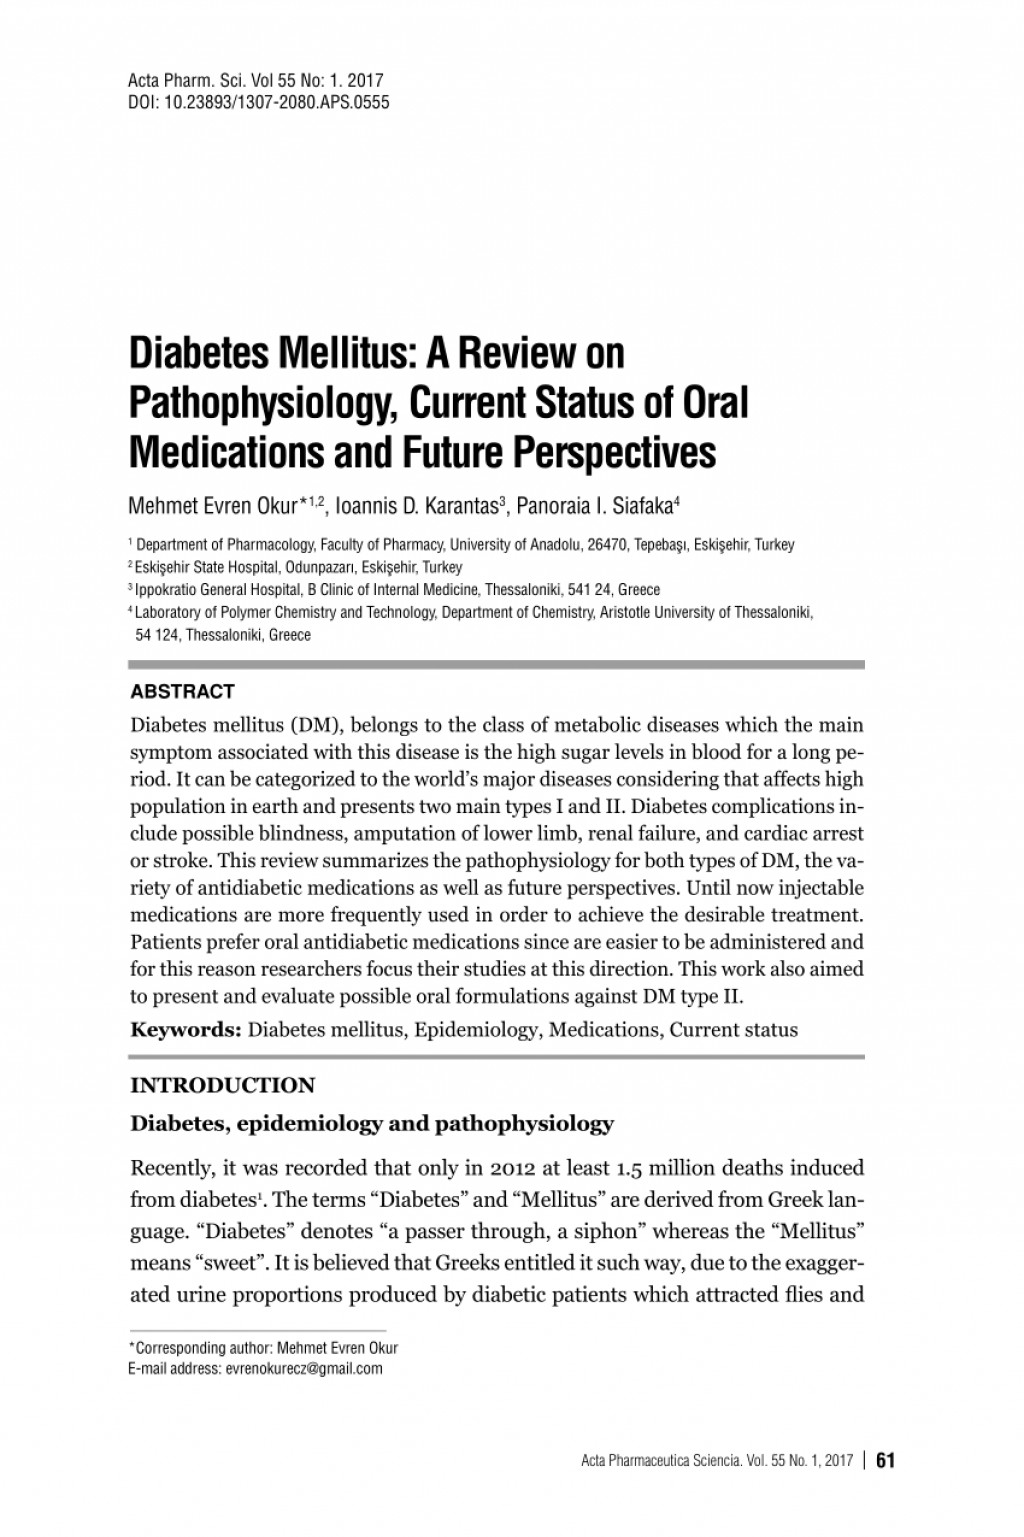 003 Diabetes Mellitus Researchs Pdf Largepreview Magnificent Research Papers Large